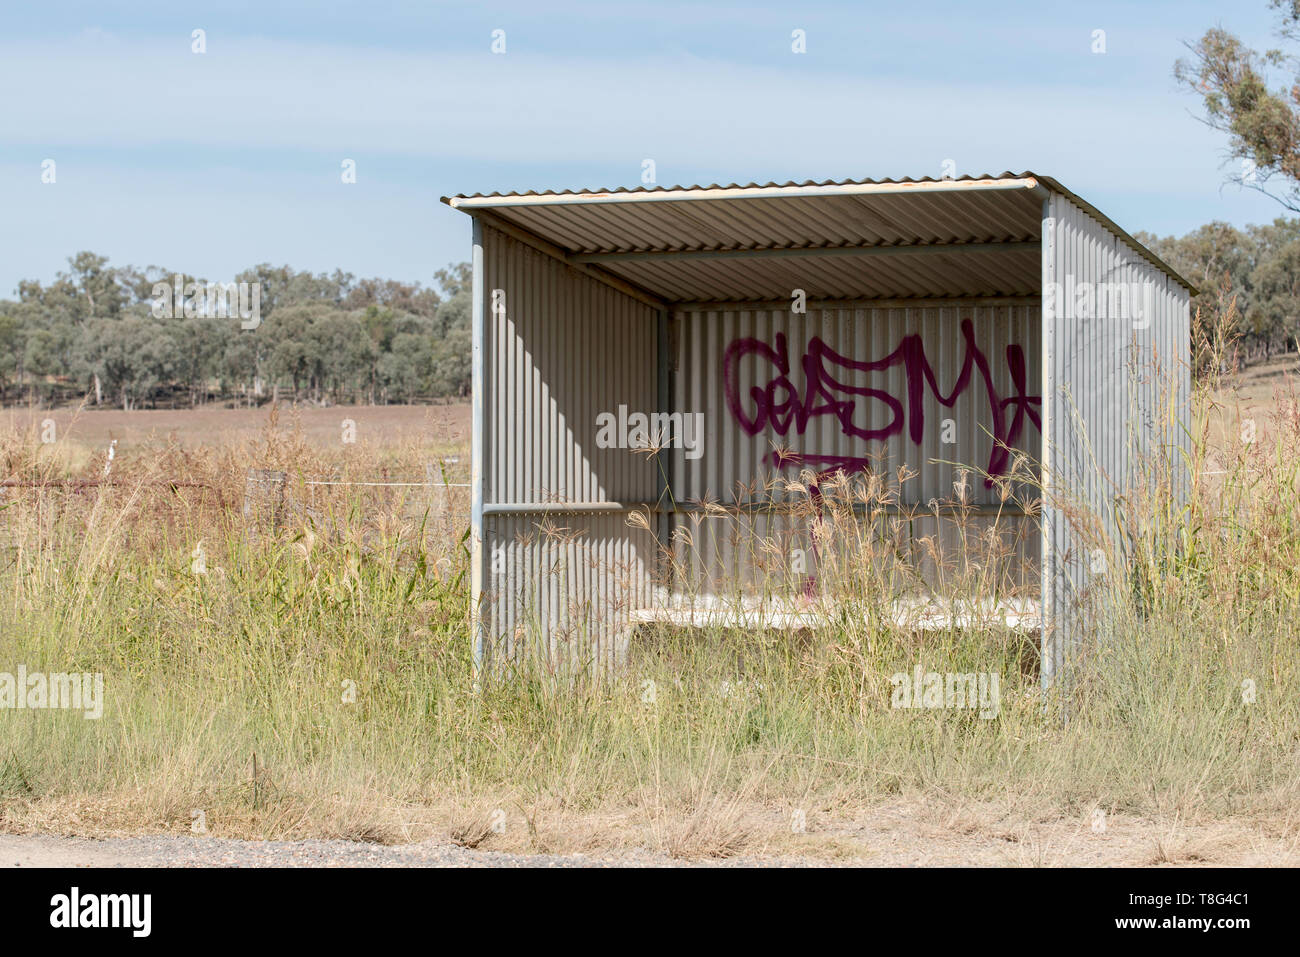 A lonely bus stop in regional New South Wales, Australia - Stock Image